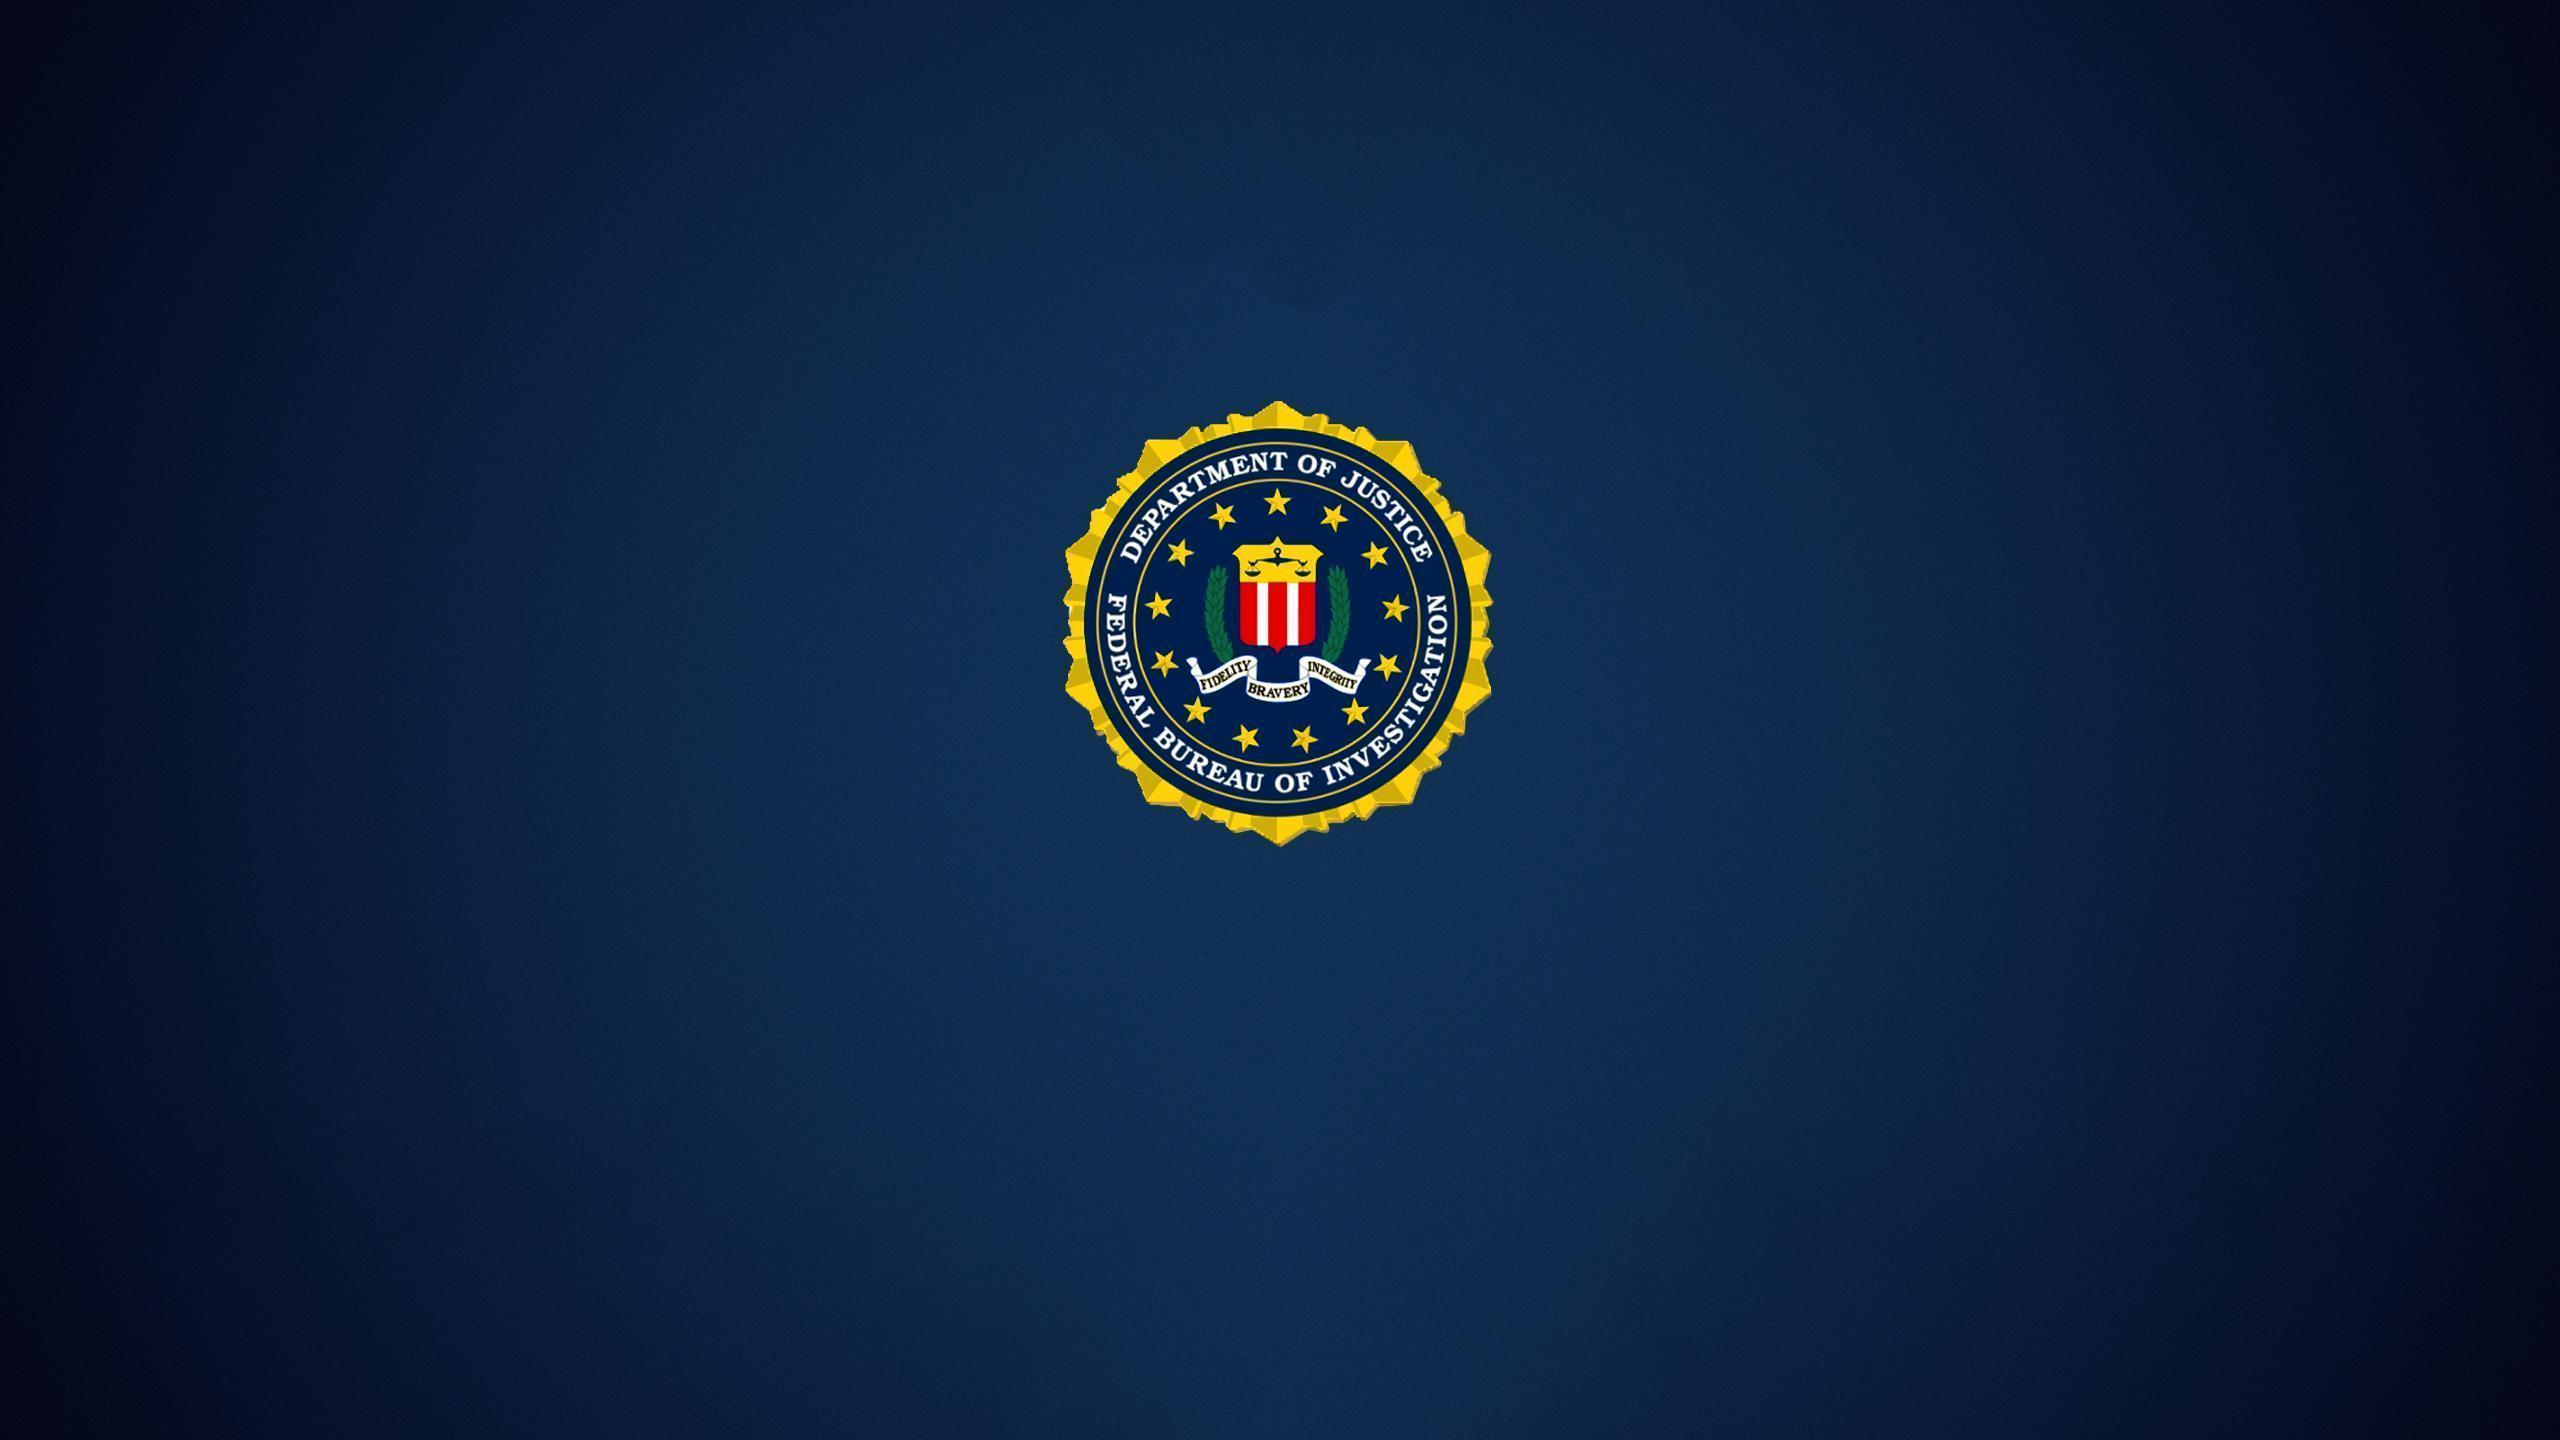 wallpapers fbi wall - photo #2